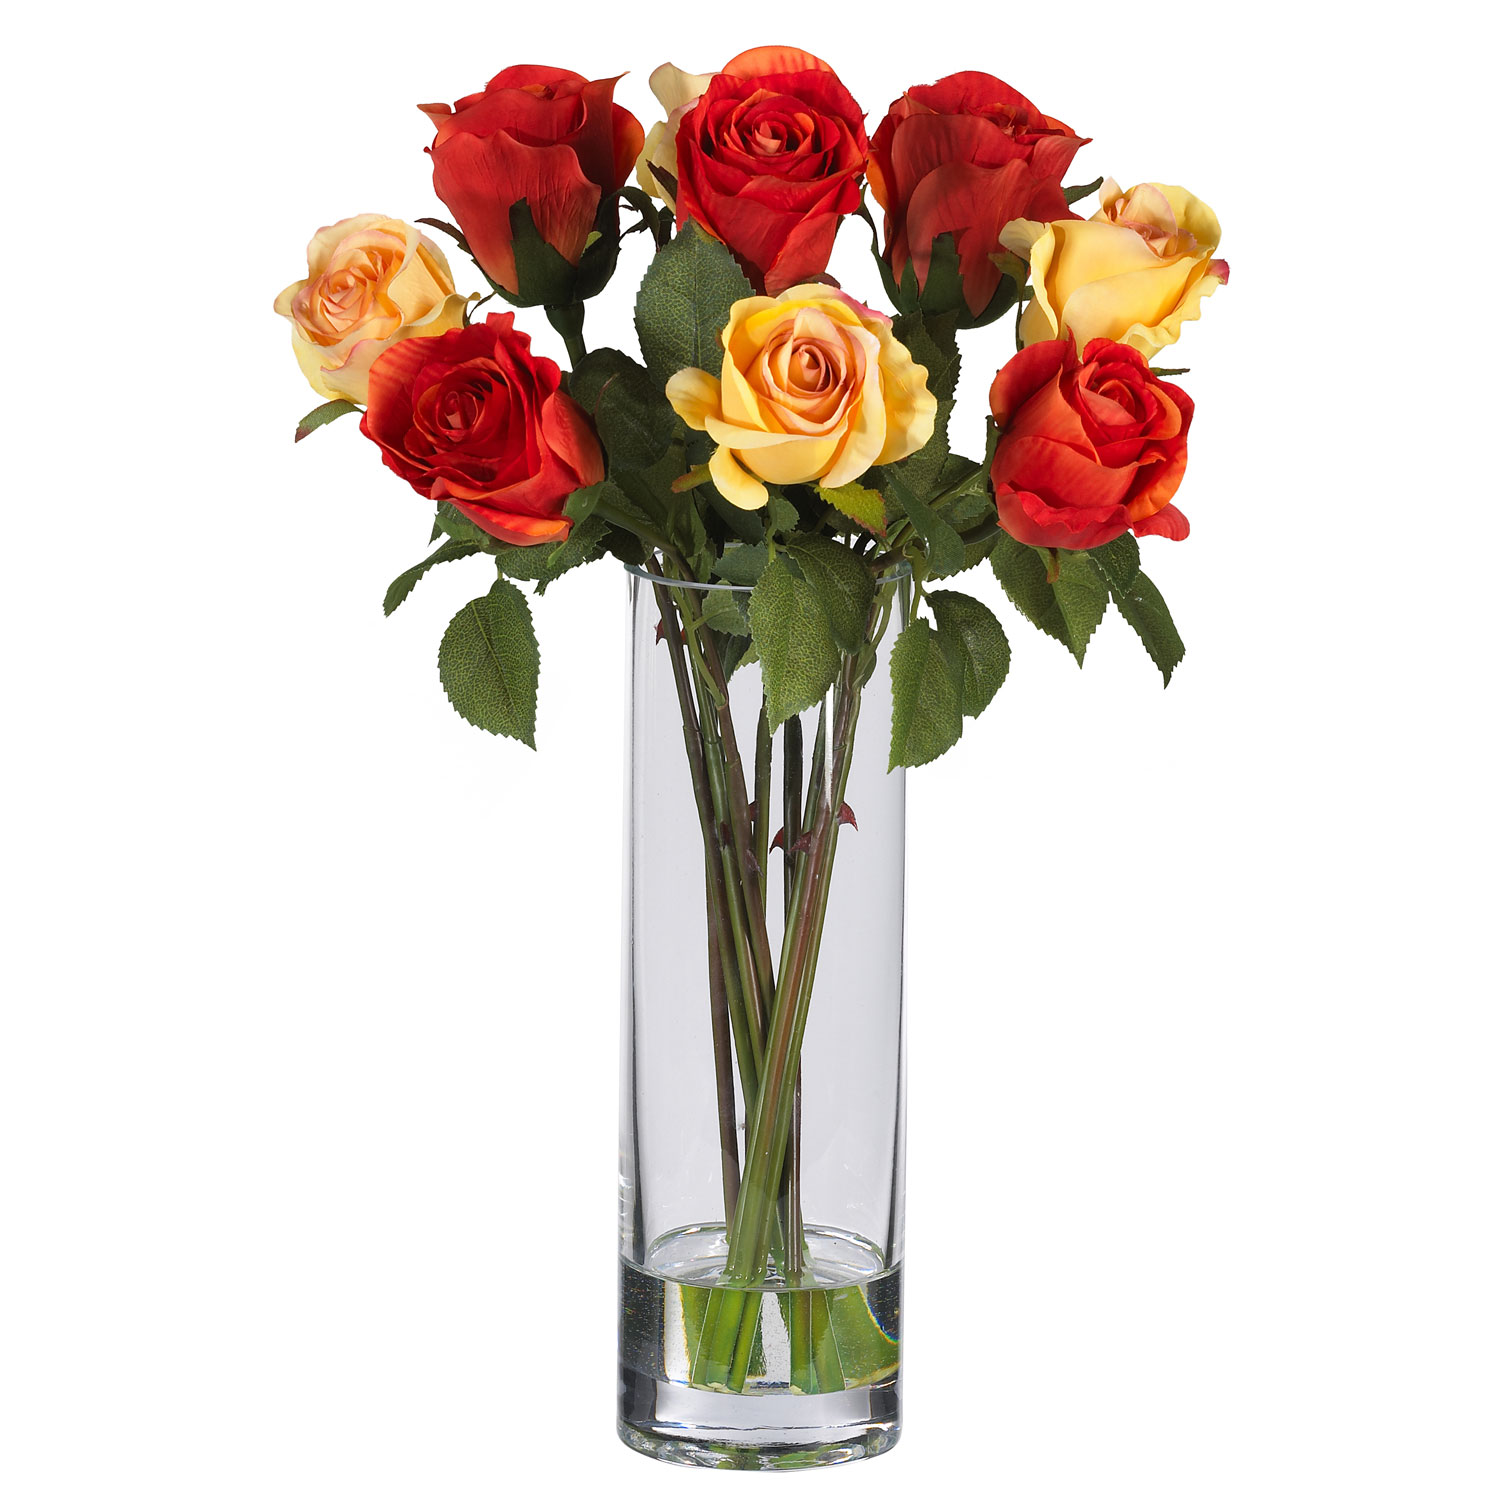 Silk roses in glass vase 4740 closeup image reviewsmspy